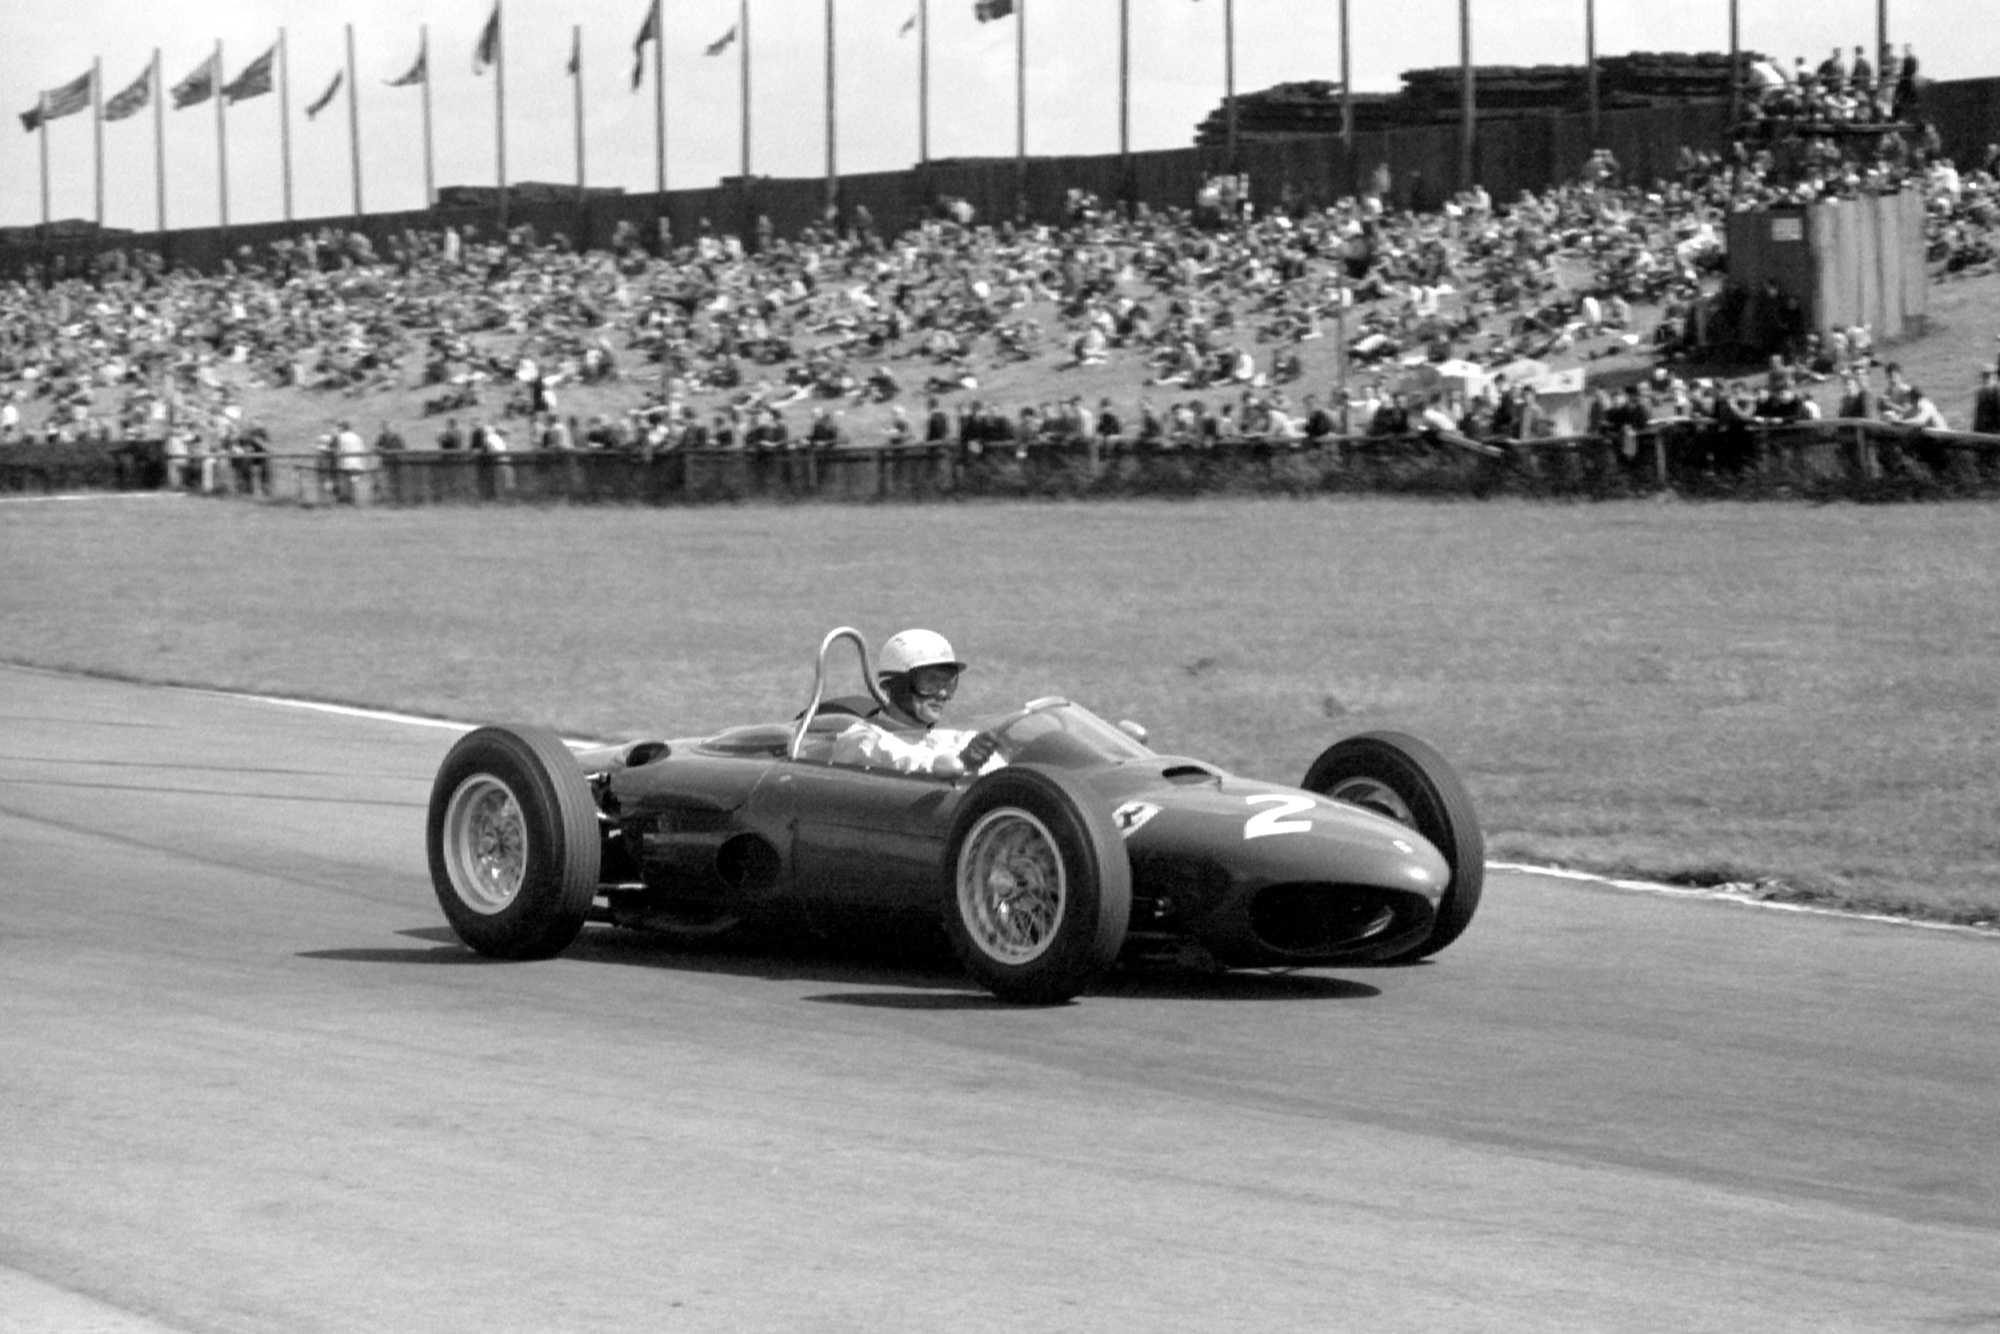 Phil Hill at Aintree in the 1962 British Grand Prix